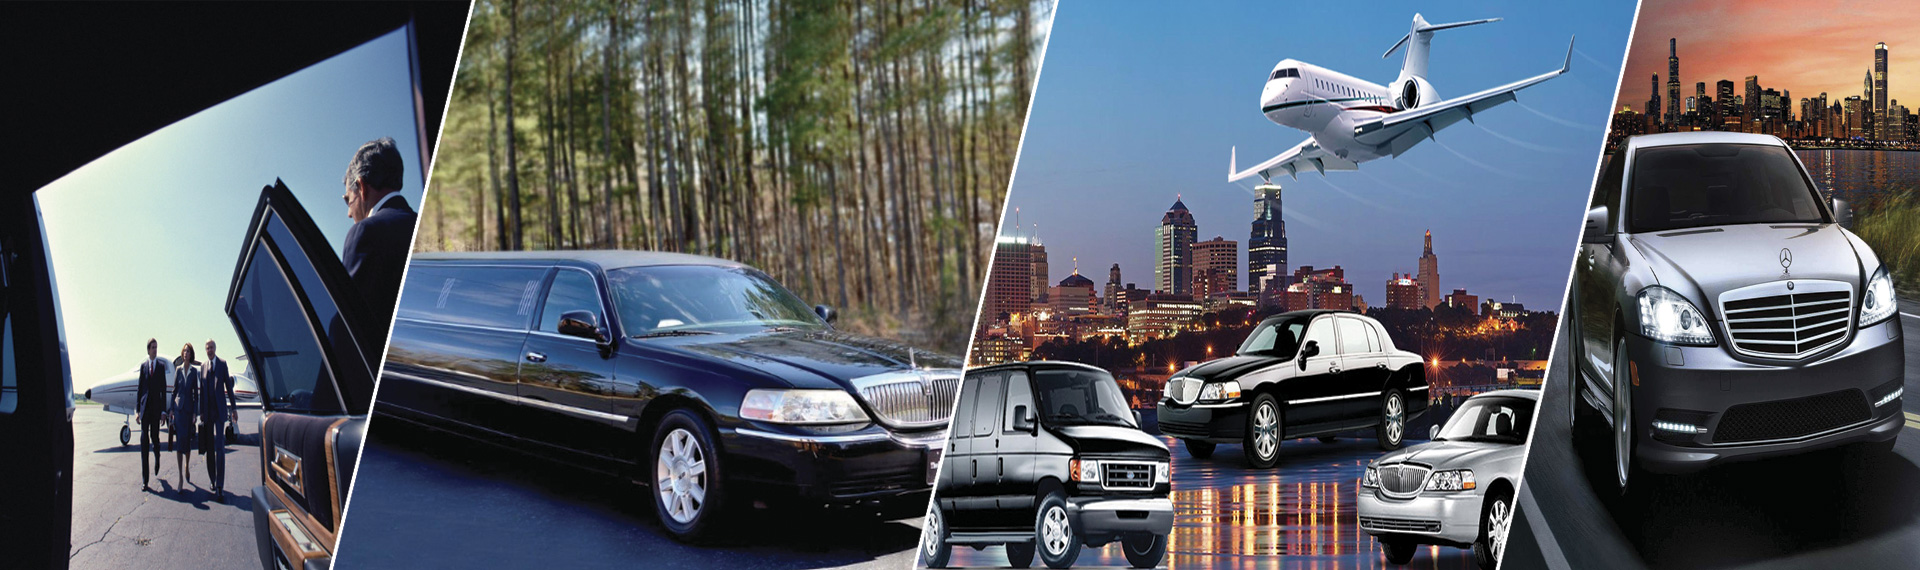 Luxe Limousine Chester PA